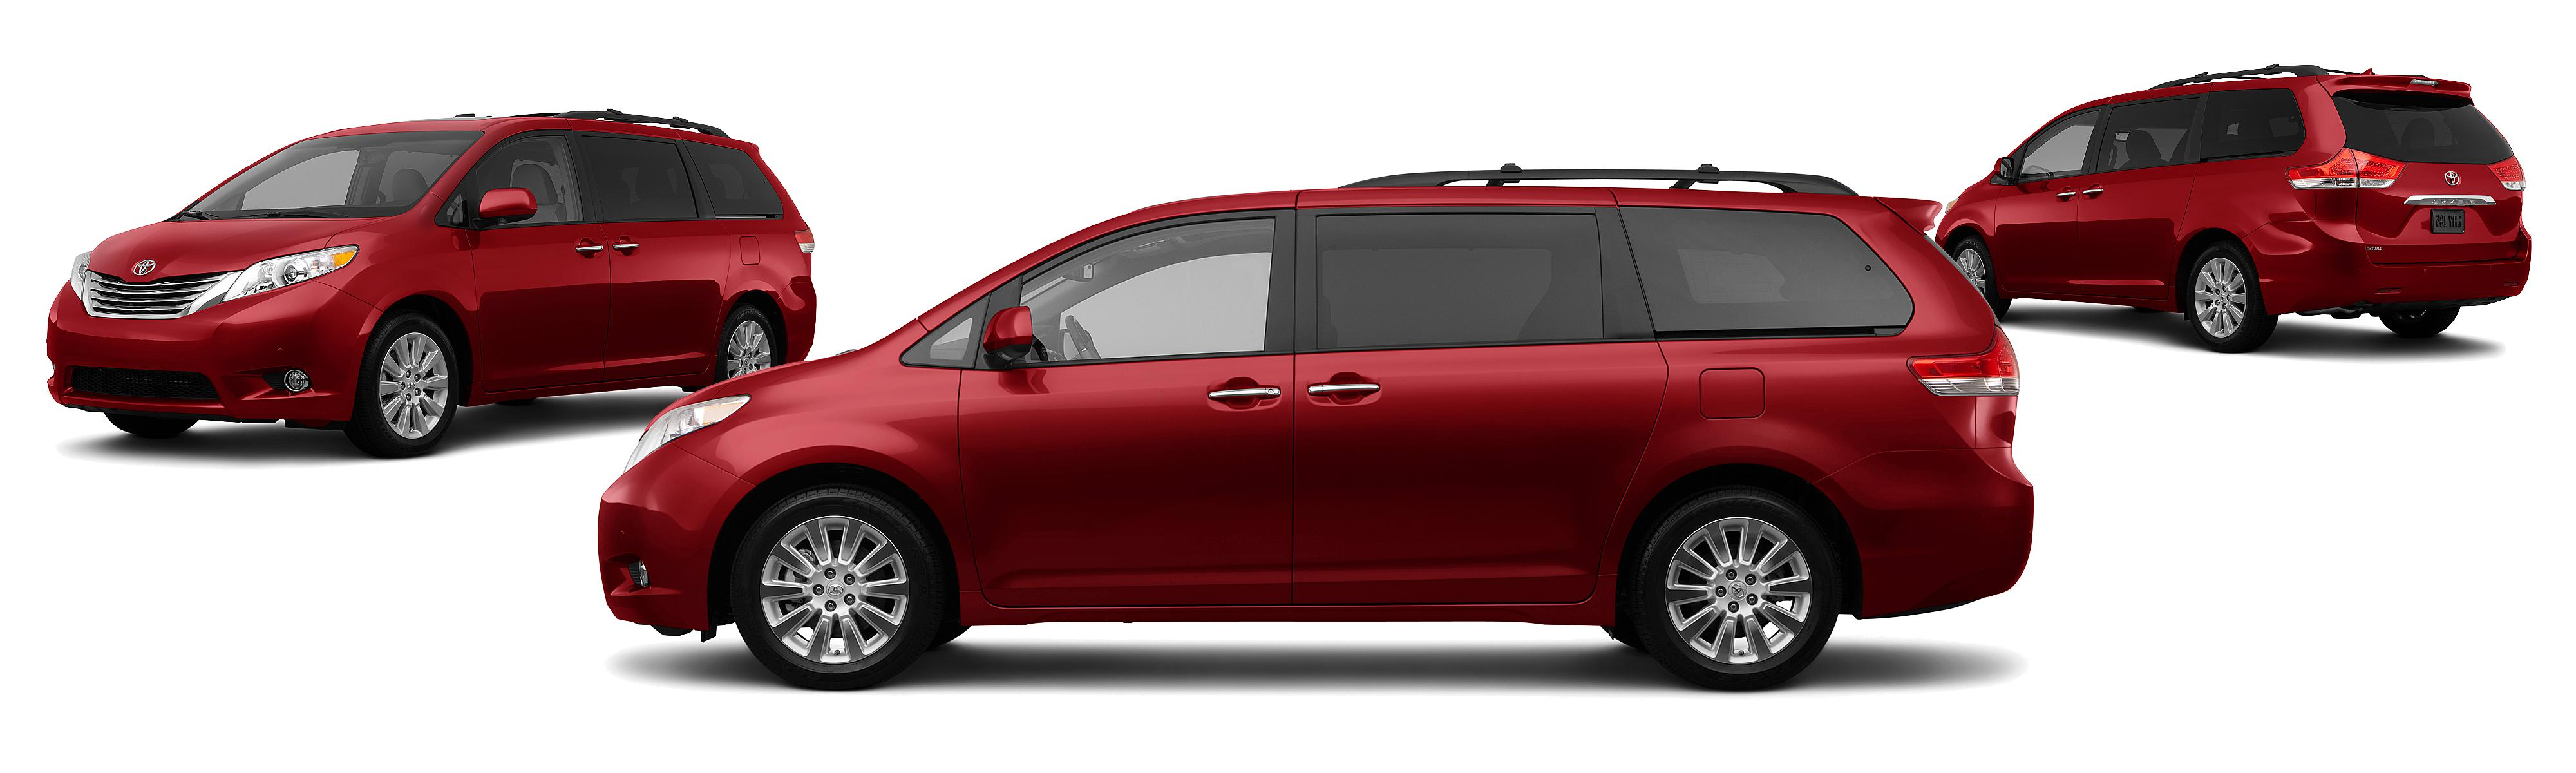 2012 toyota sienna awd limited 7 passenger 4dr mini van research groovecar